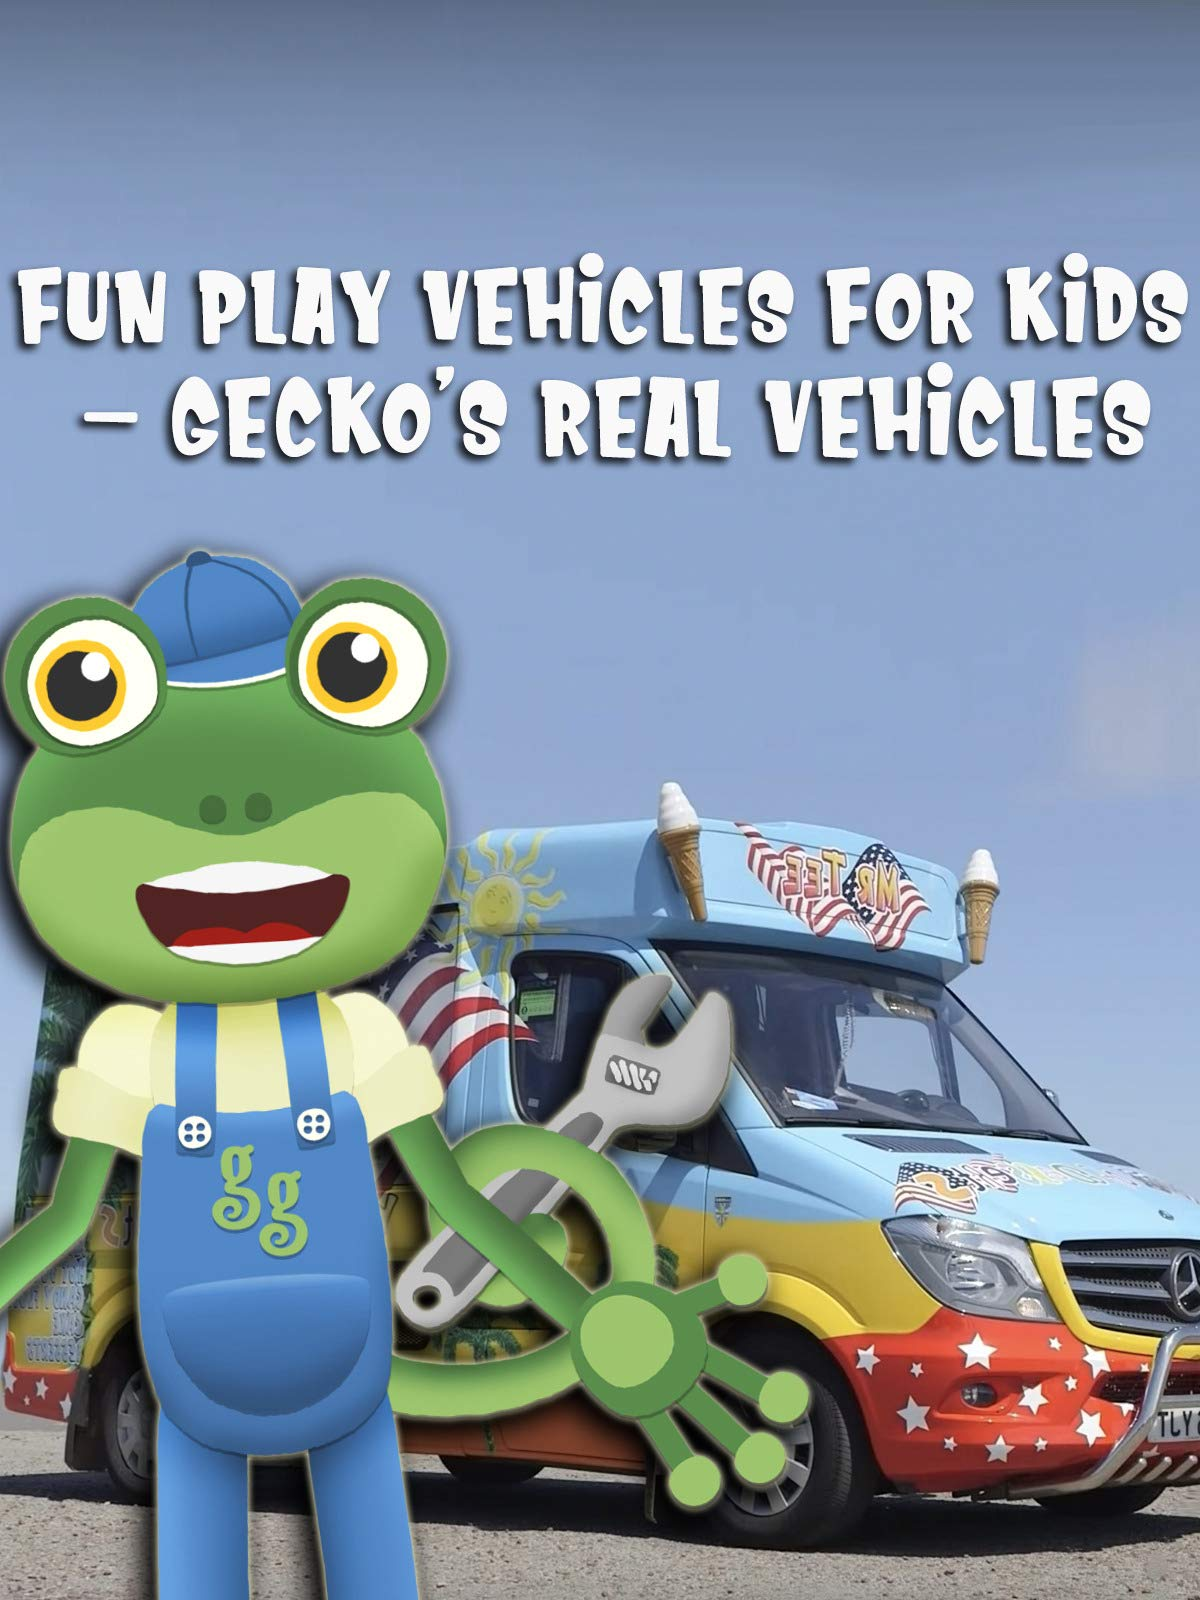 Fun Play Vehicles For Kids - Gecko's Real Vehicles